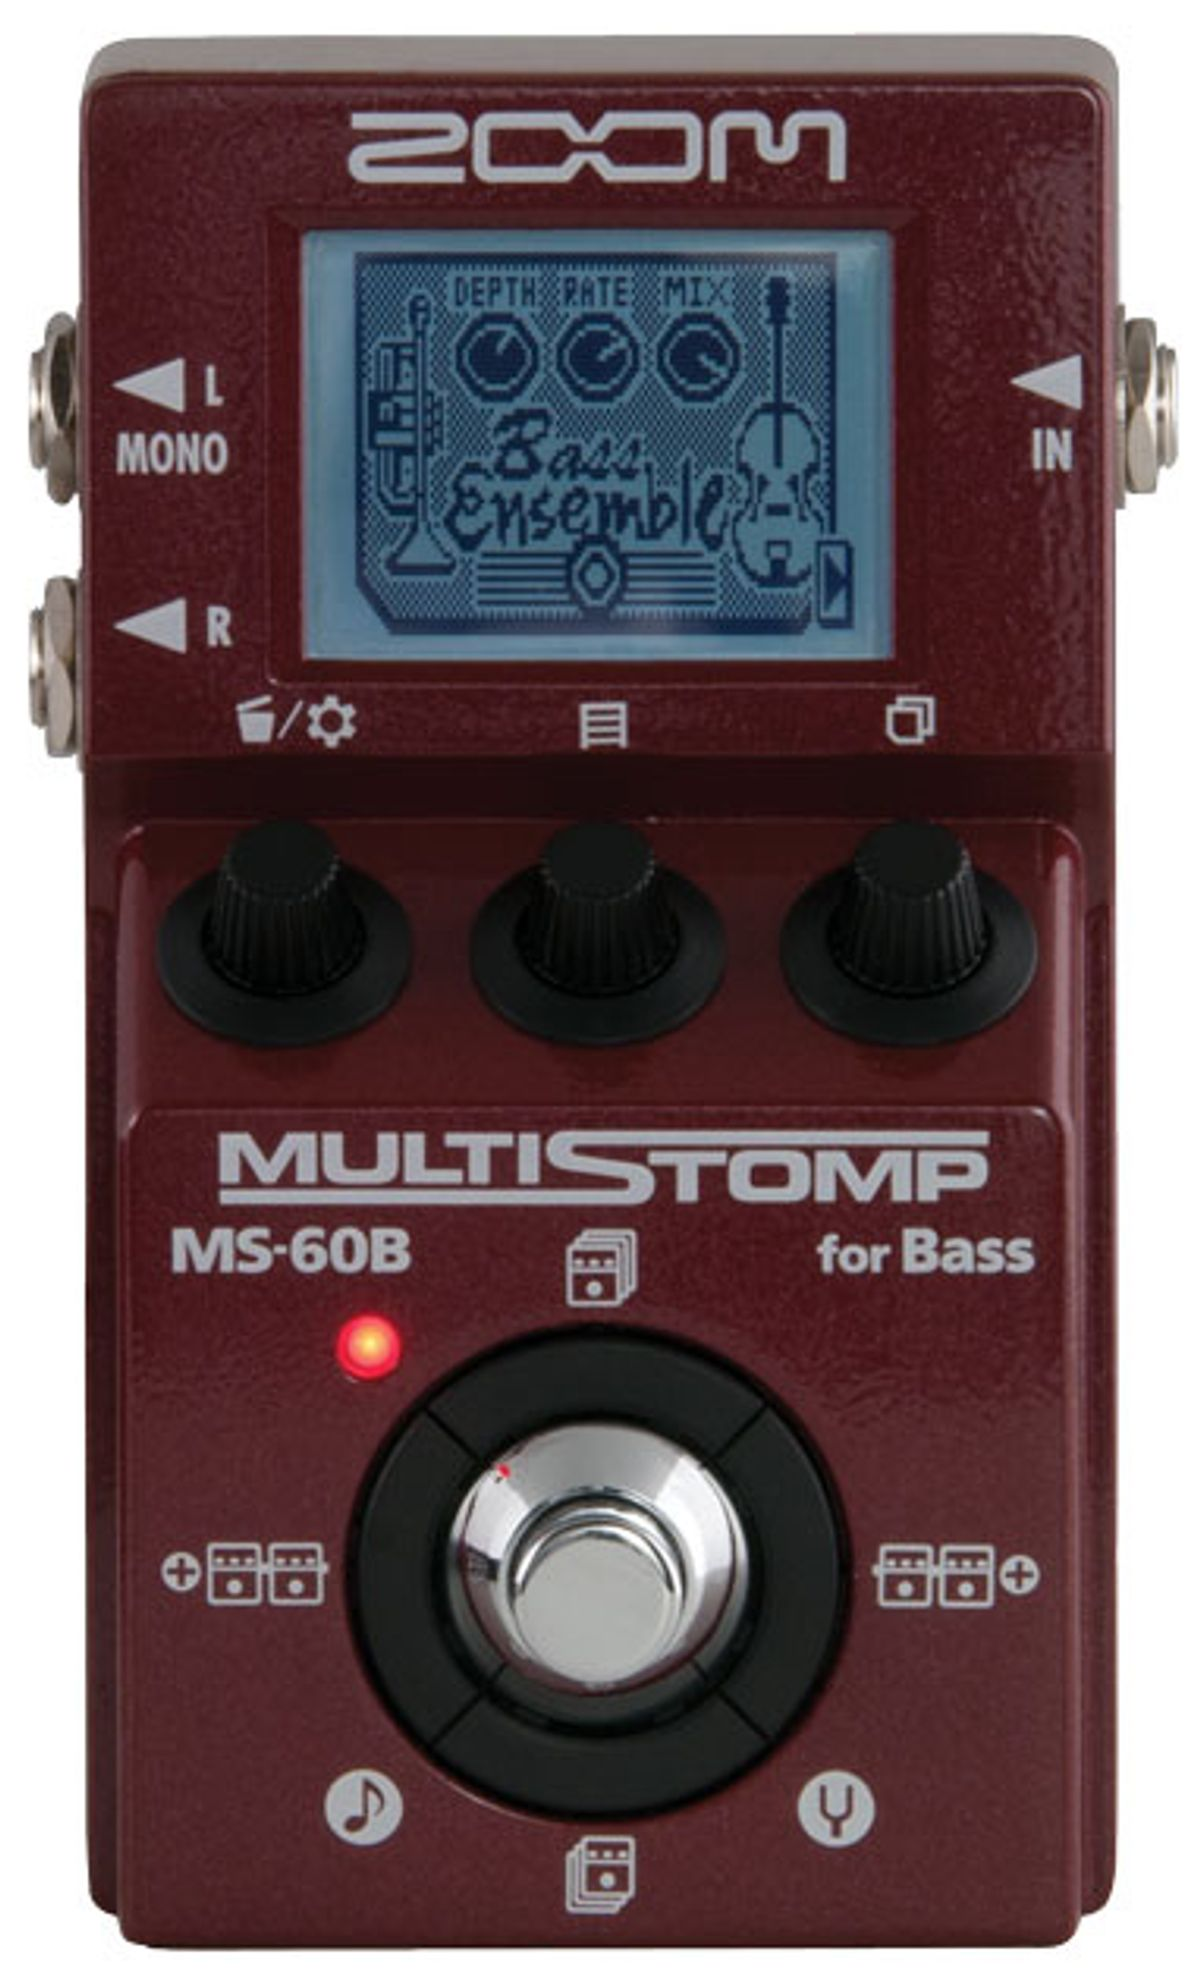 Zoom MS-60B MultiStomp for Bass Review